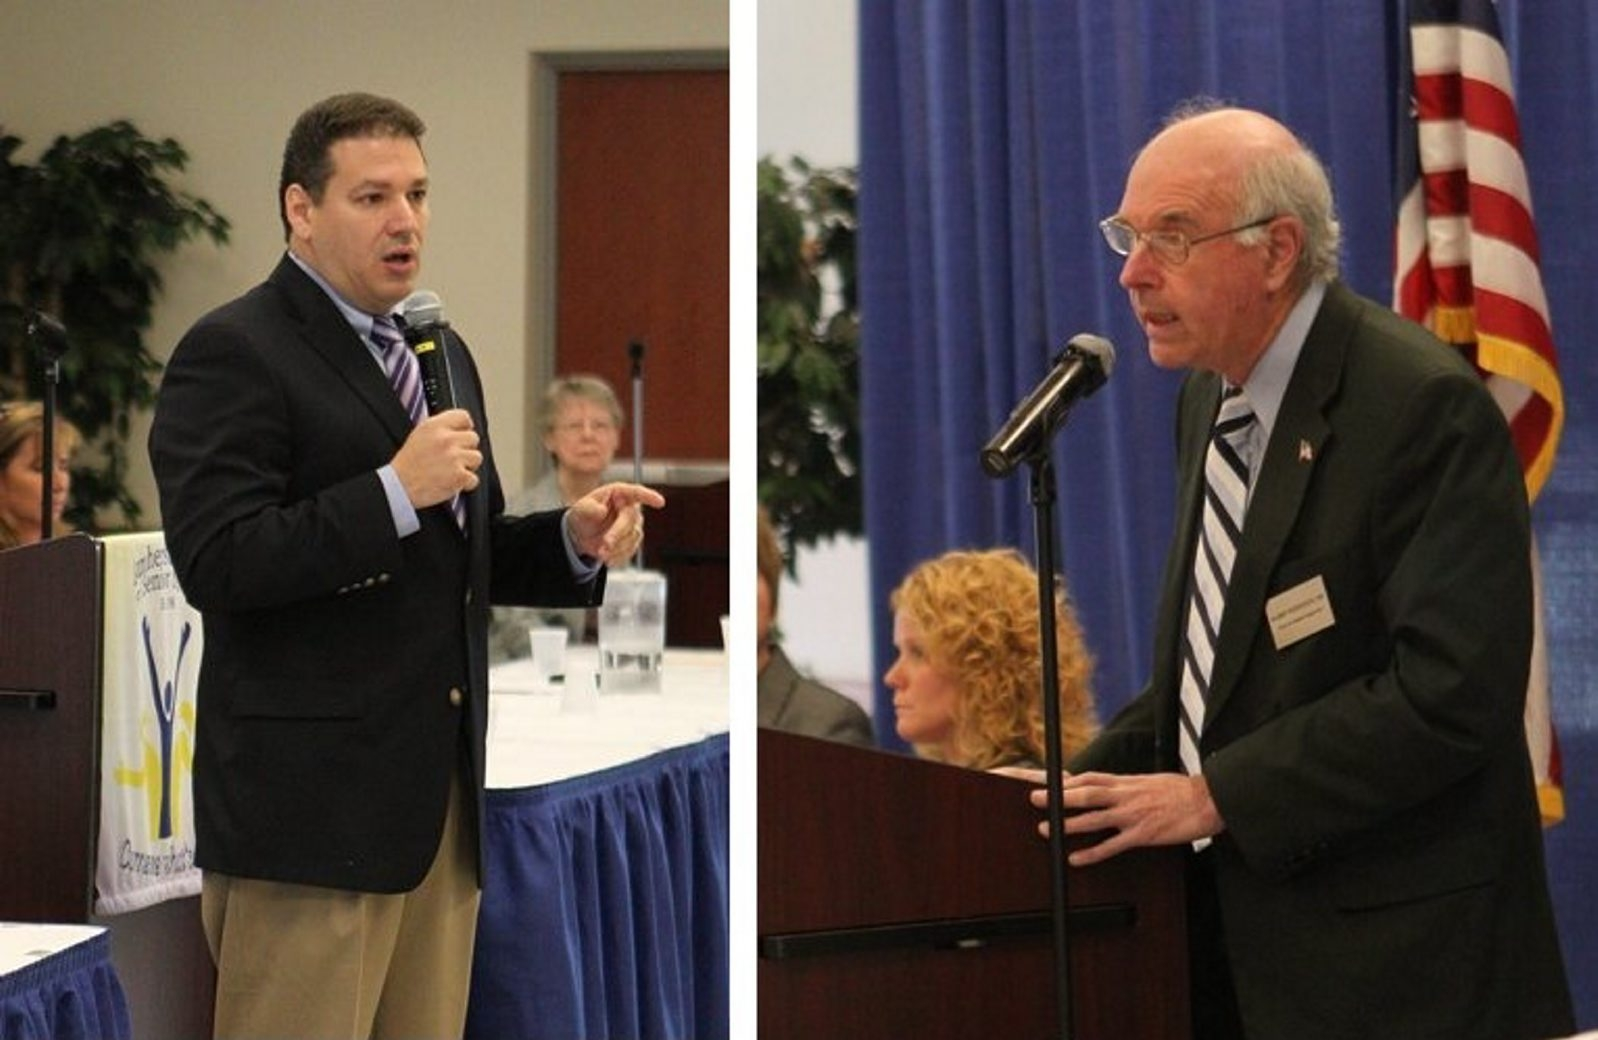 Incumbent Republican Amherst supervisor Dr. Barry Weinstein, right, and Democratic challenger Mark Manna participated in a candidate forum Thursday at the Amherst Center for Senior Services. (Sharon Cantillon/Buffalo News)